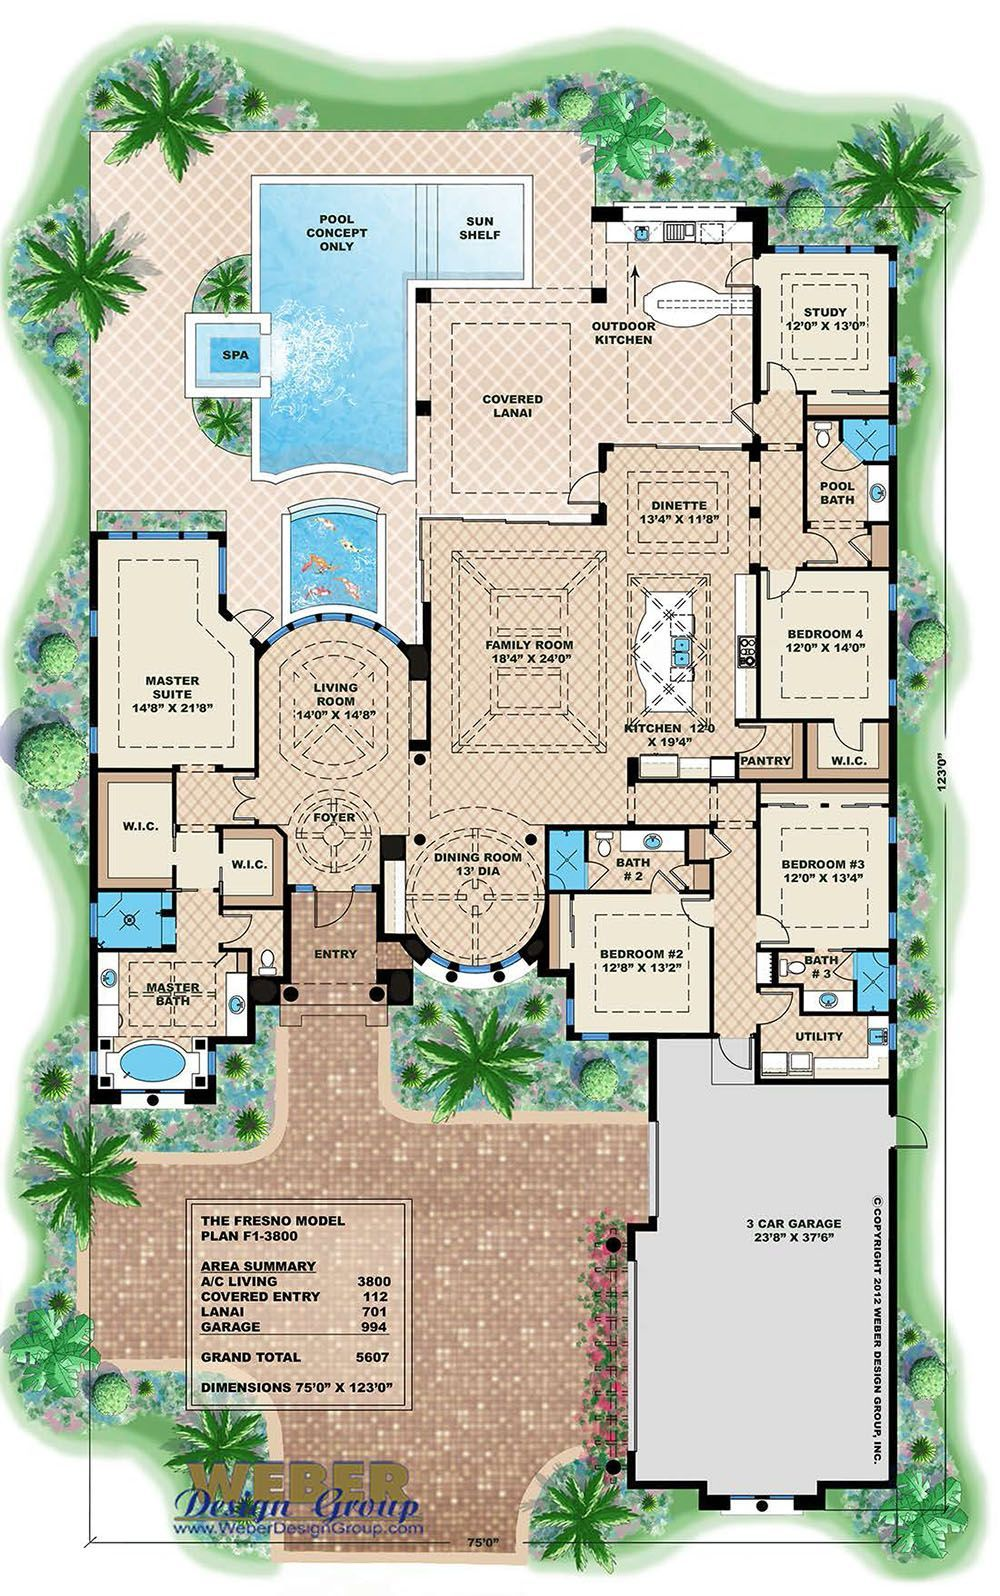 1 Story House Plans One Story Modern Luxury Home Floor Plans Mediterranean Style House Plans Luxury House Plans Mediterranean House Plans